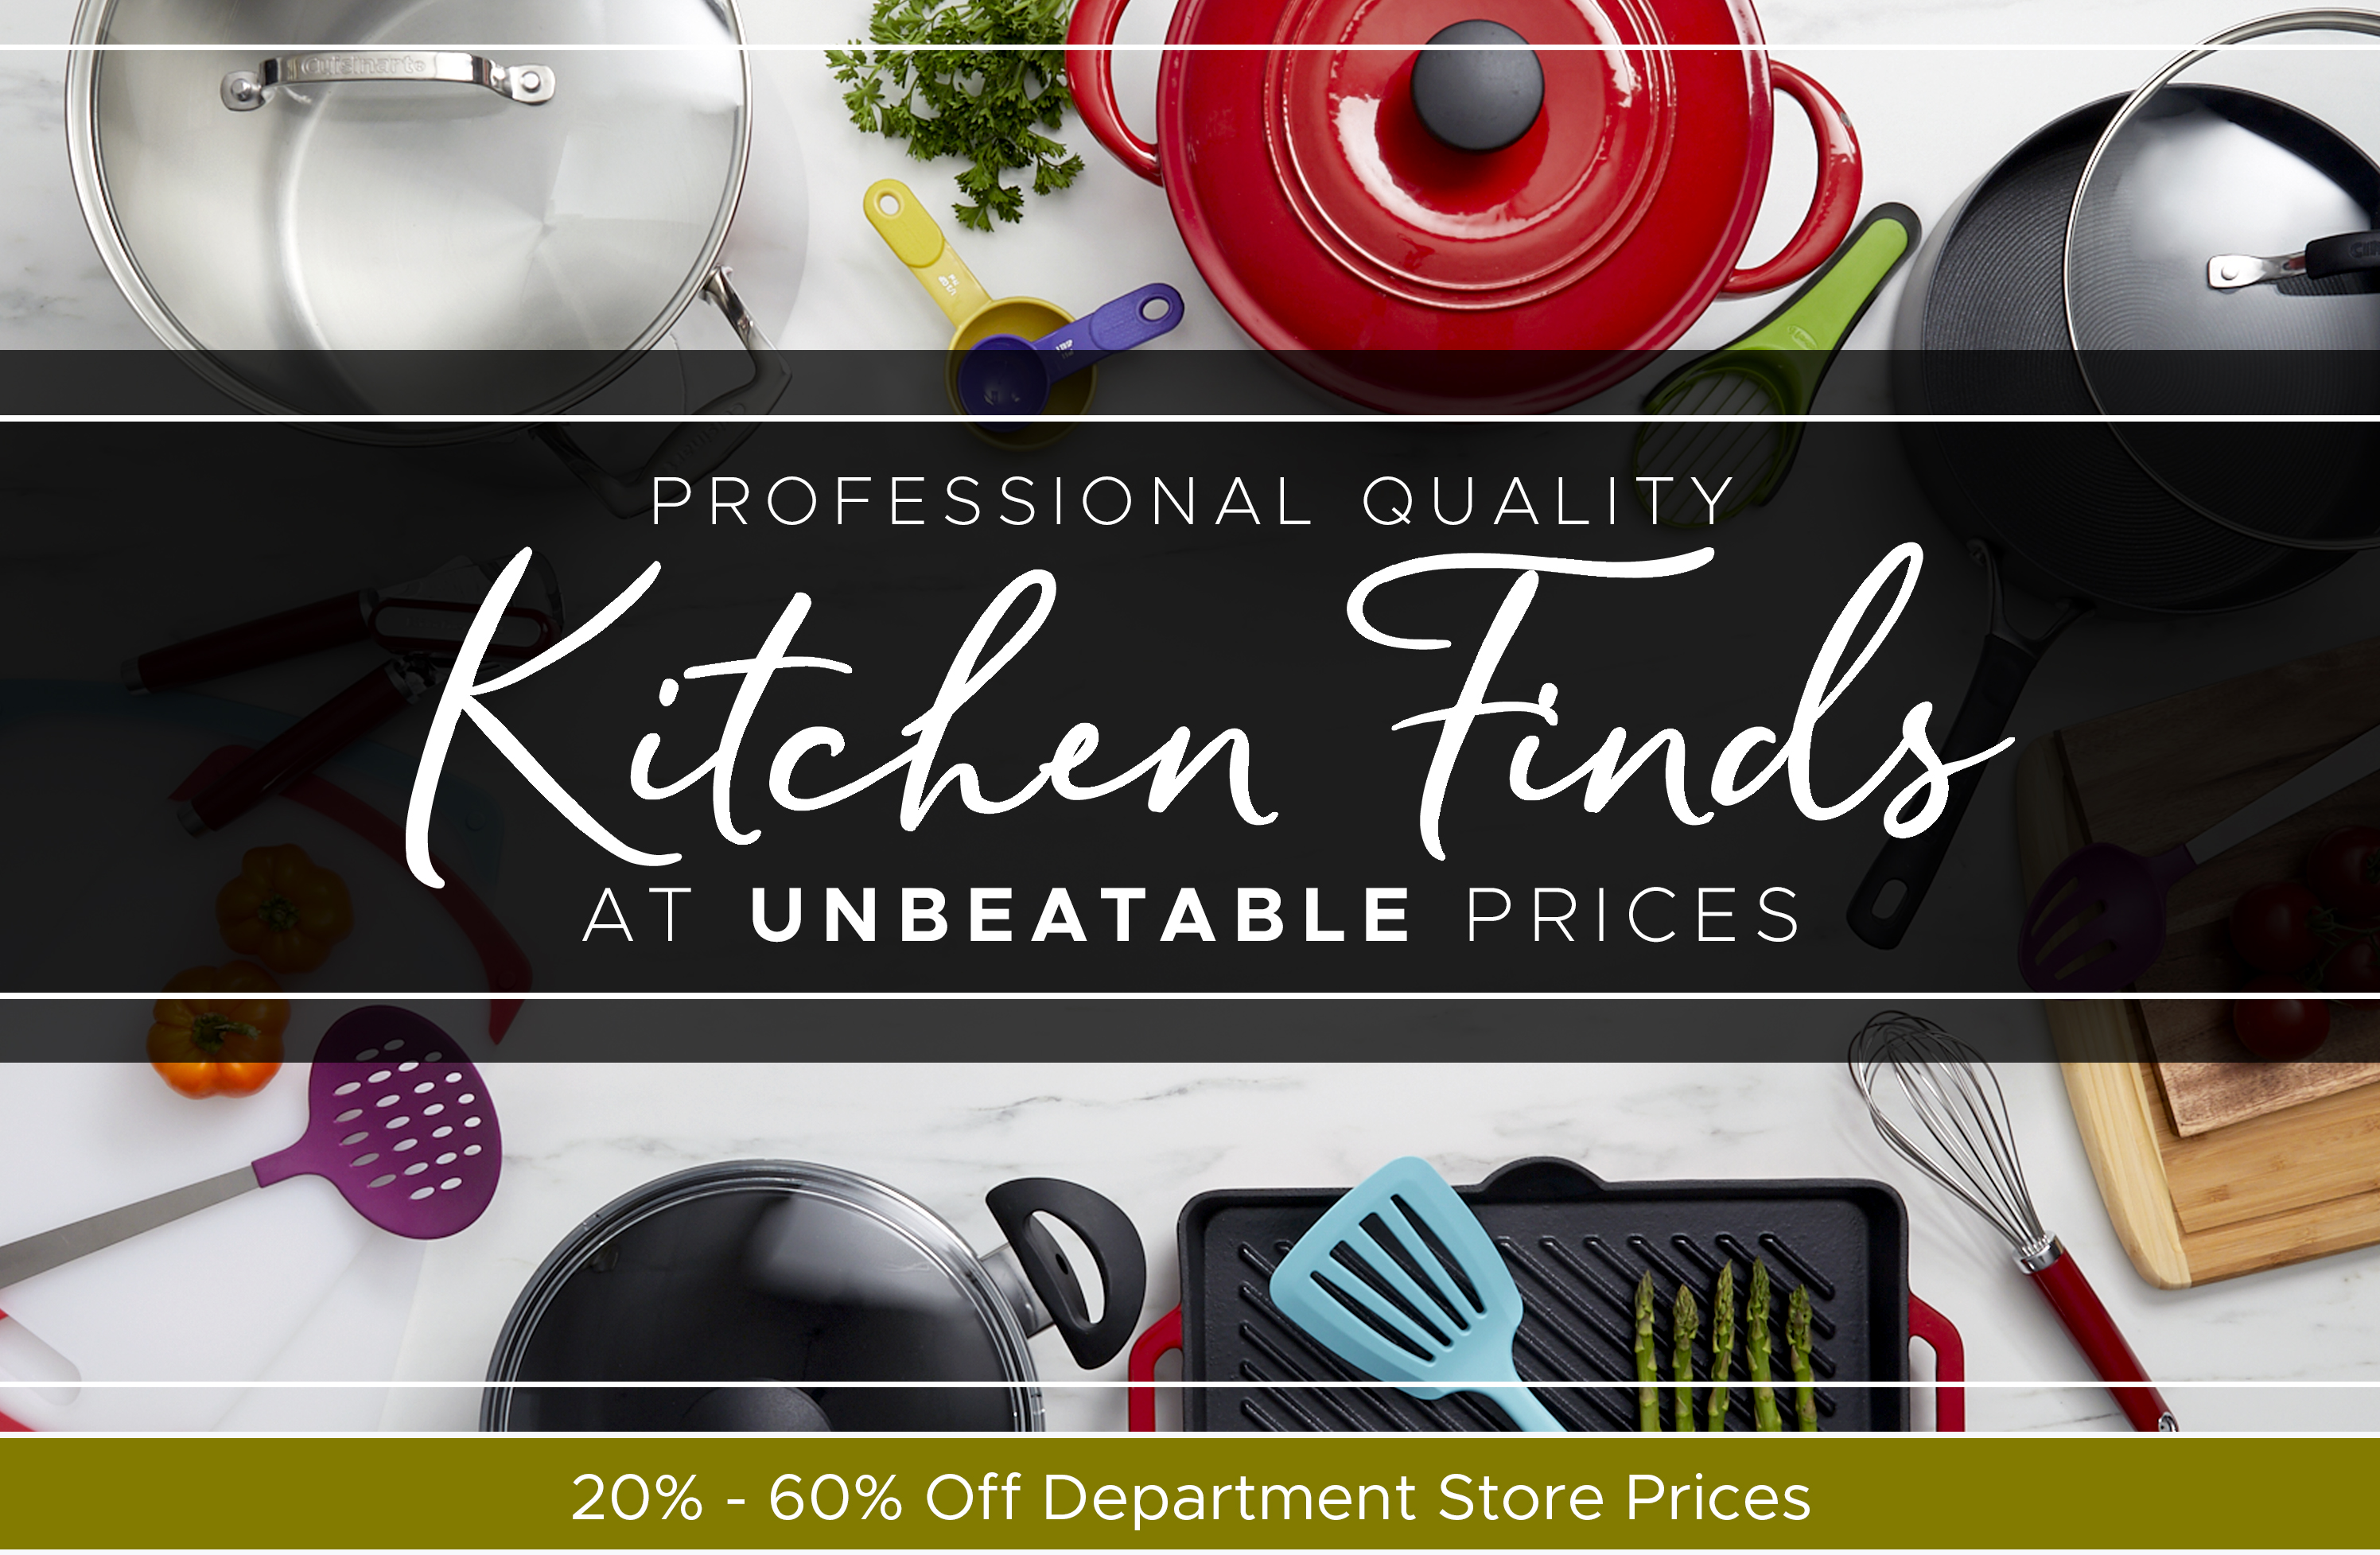 Professional Quality Kitchen Finds At Unbeatable Prices